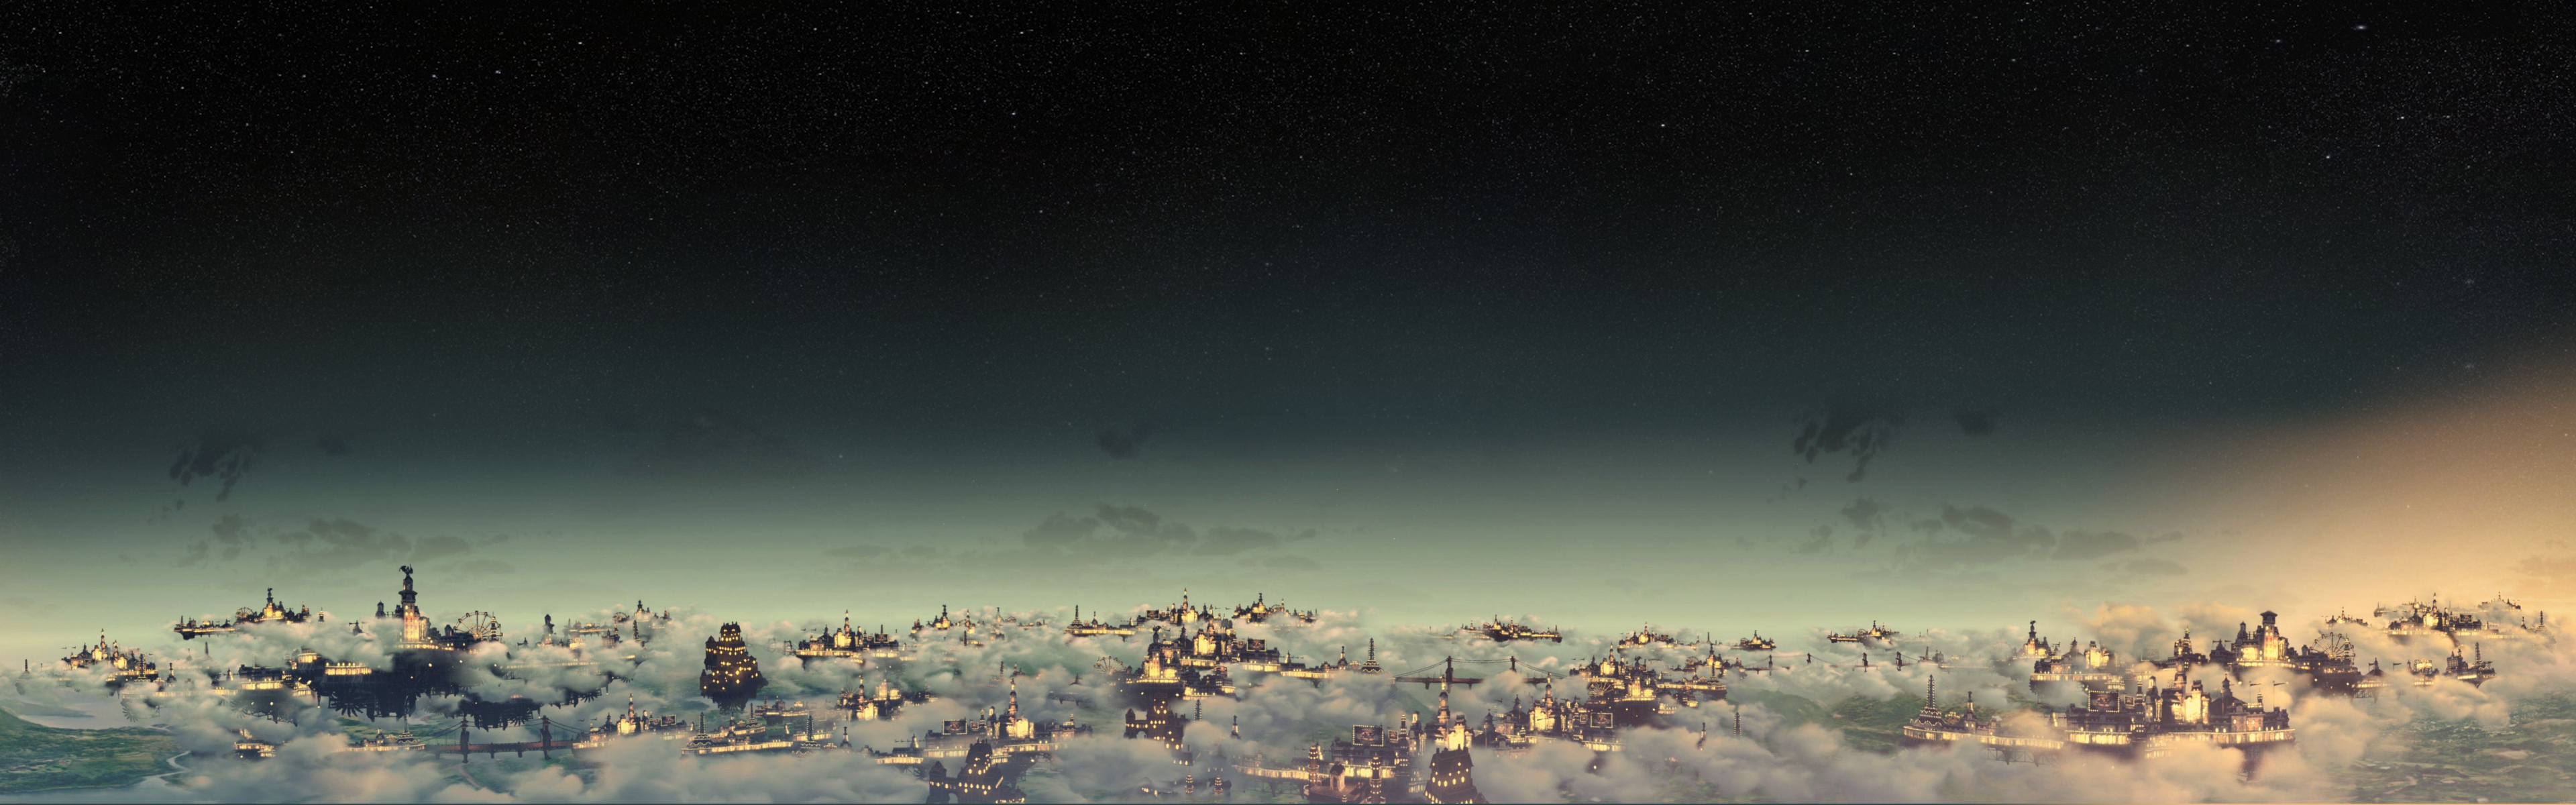 49 Panoramic Star Wars Wallpaper 3840x1080 On Wallpapersafari